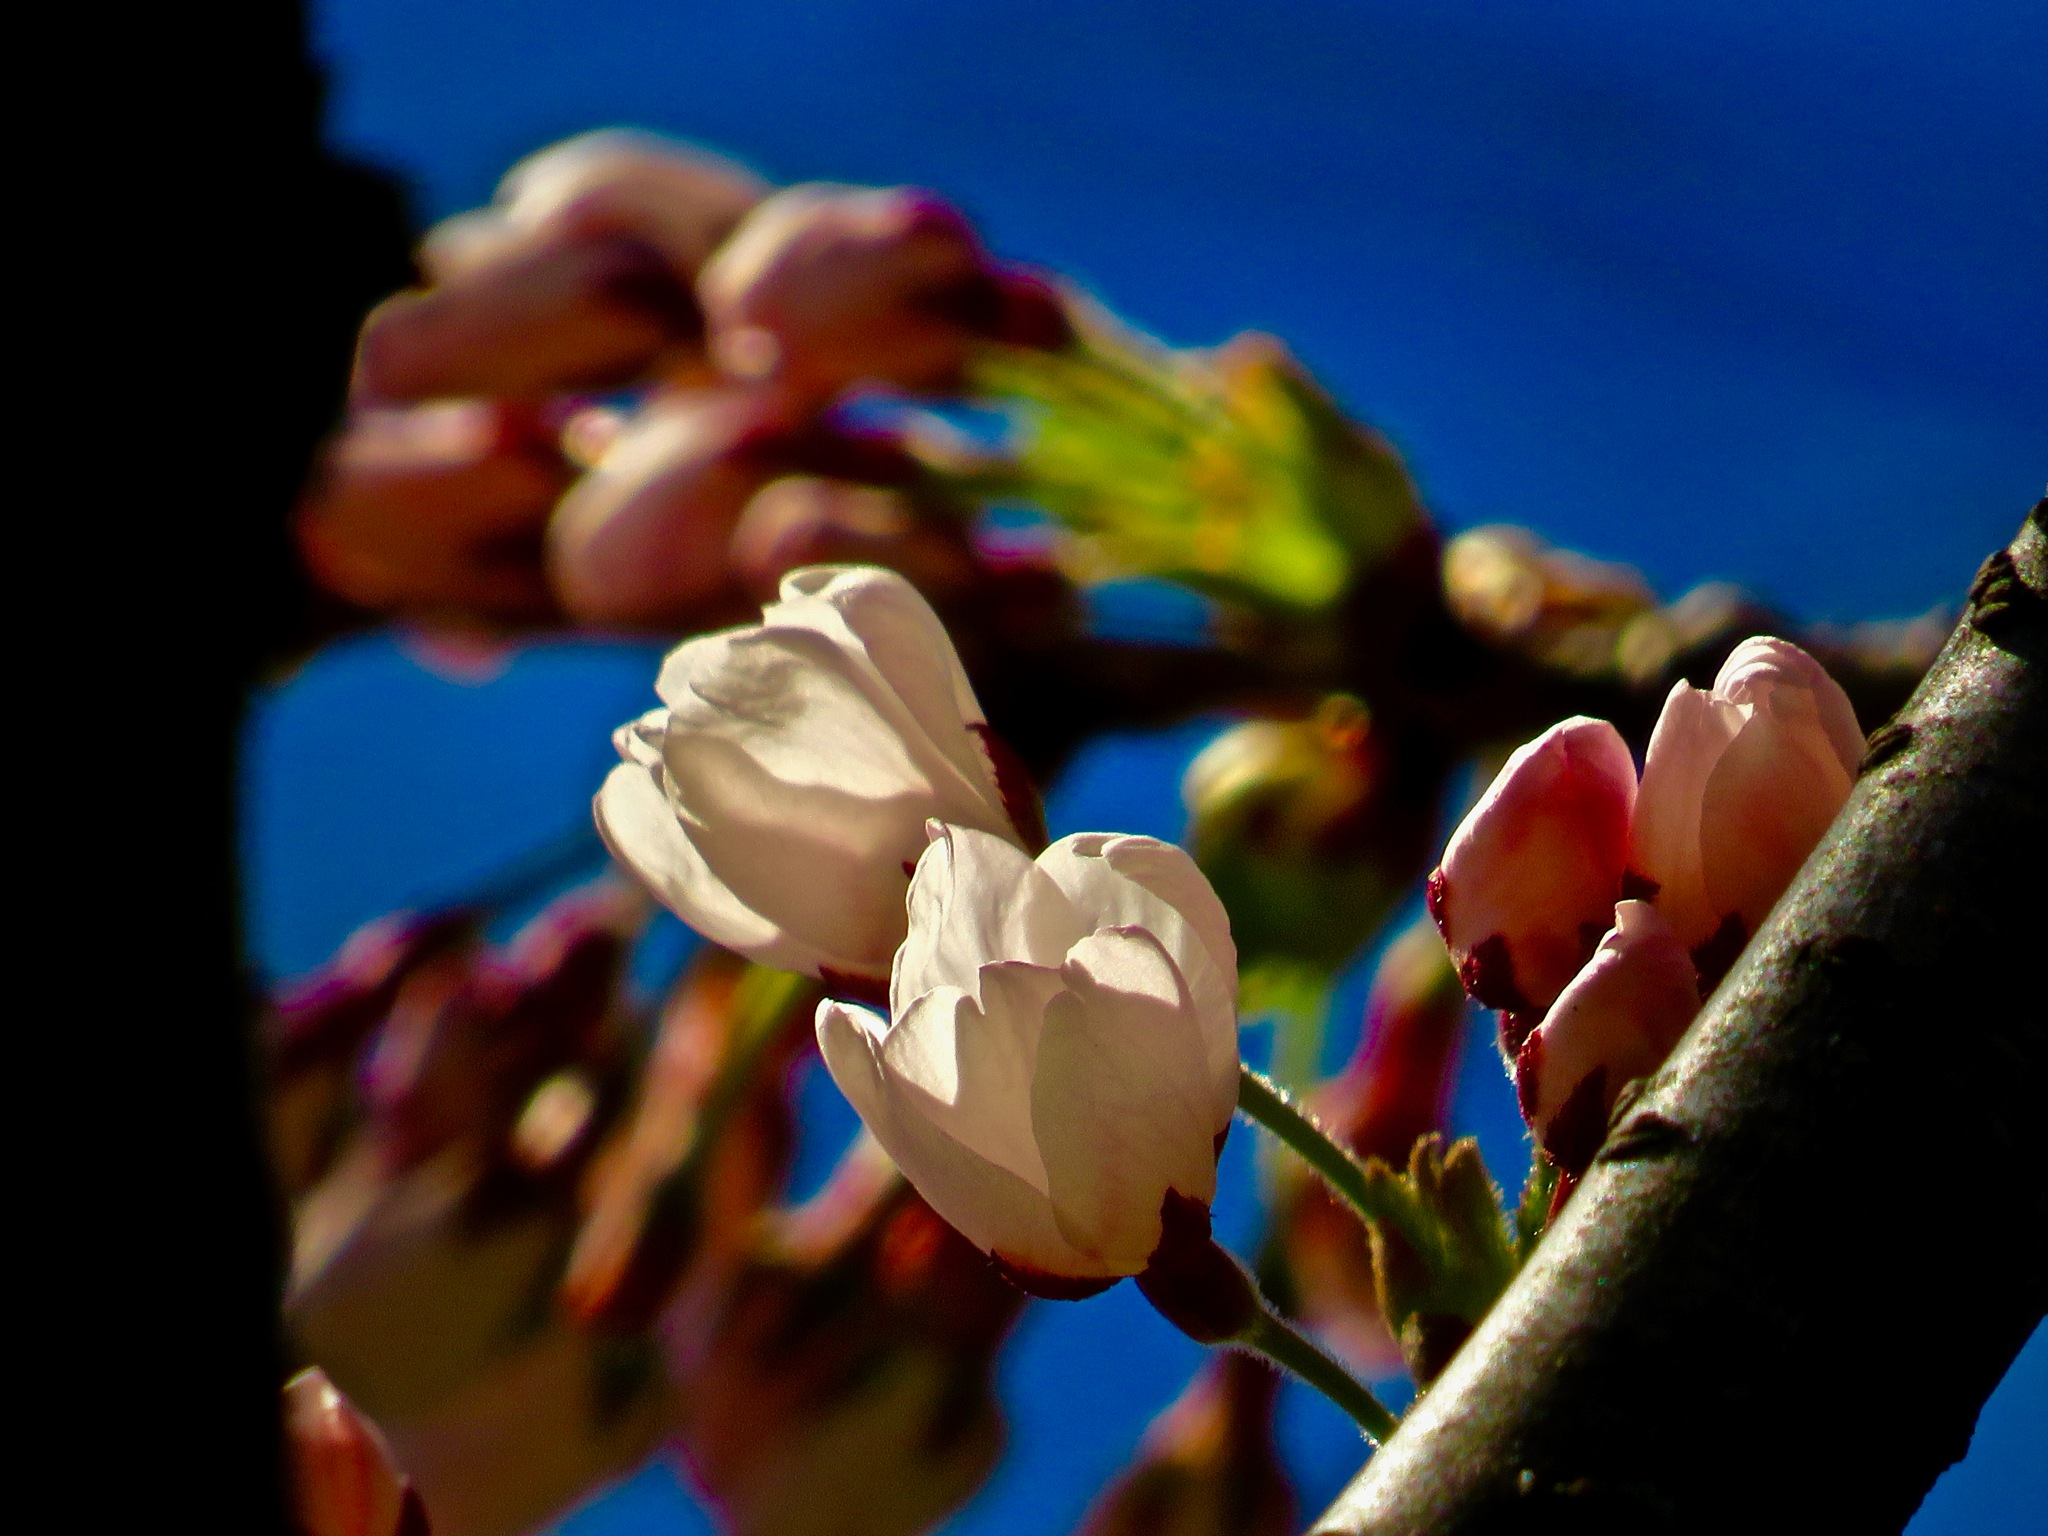 enjoying the cherry blossoms here while we can !! by David Devion